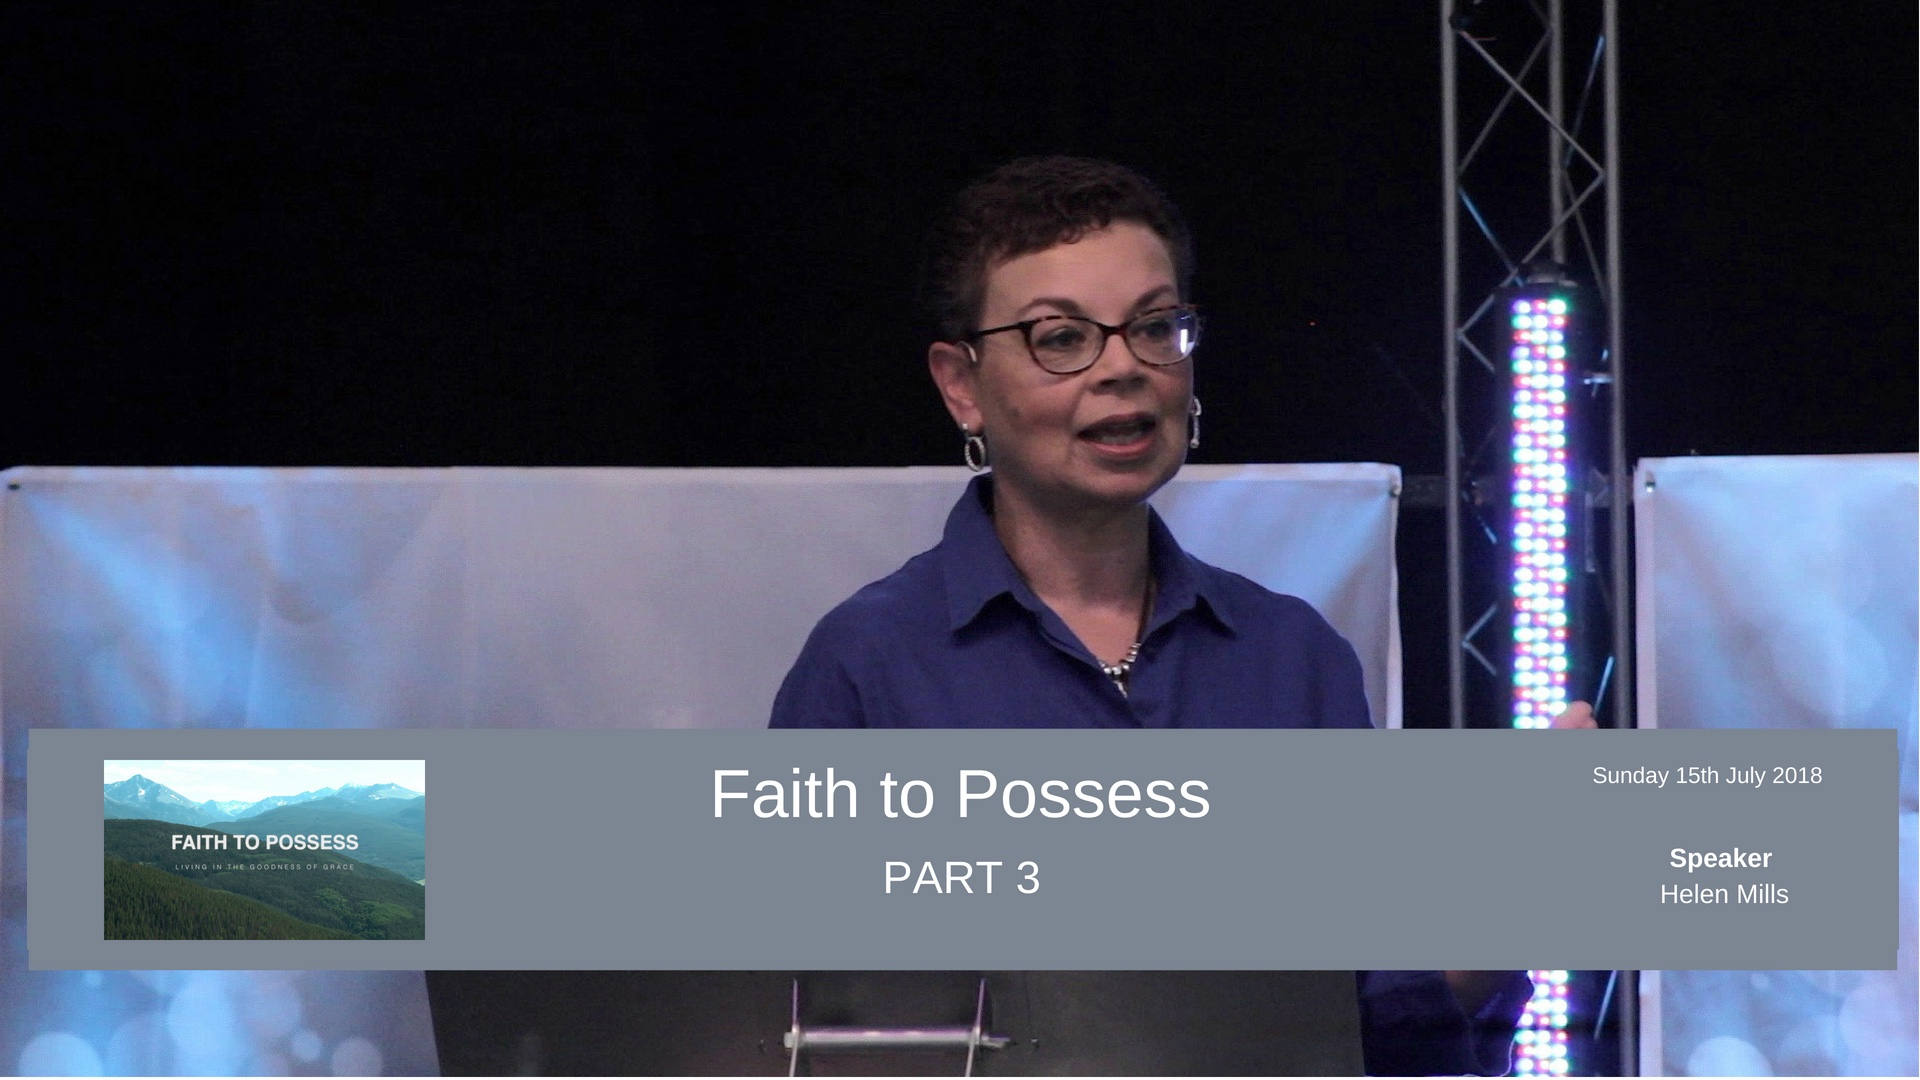 Faith to Possess - Part 3 - Faith is not blind